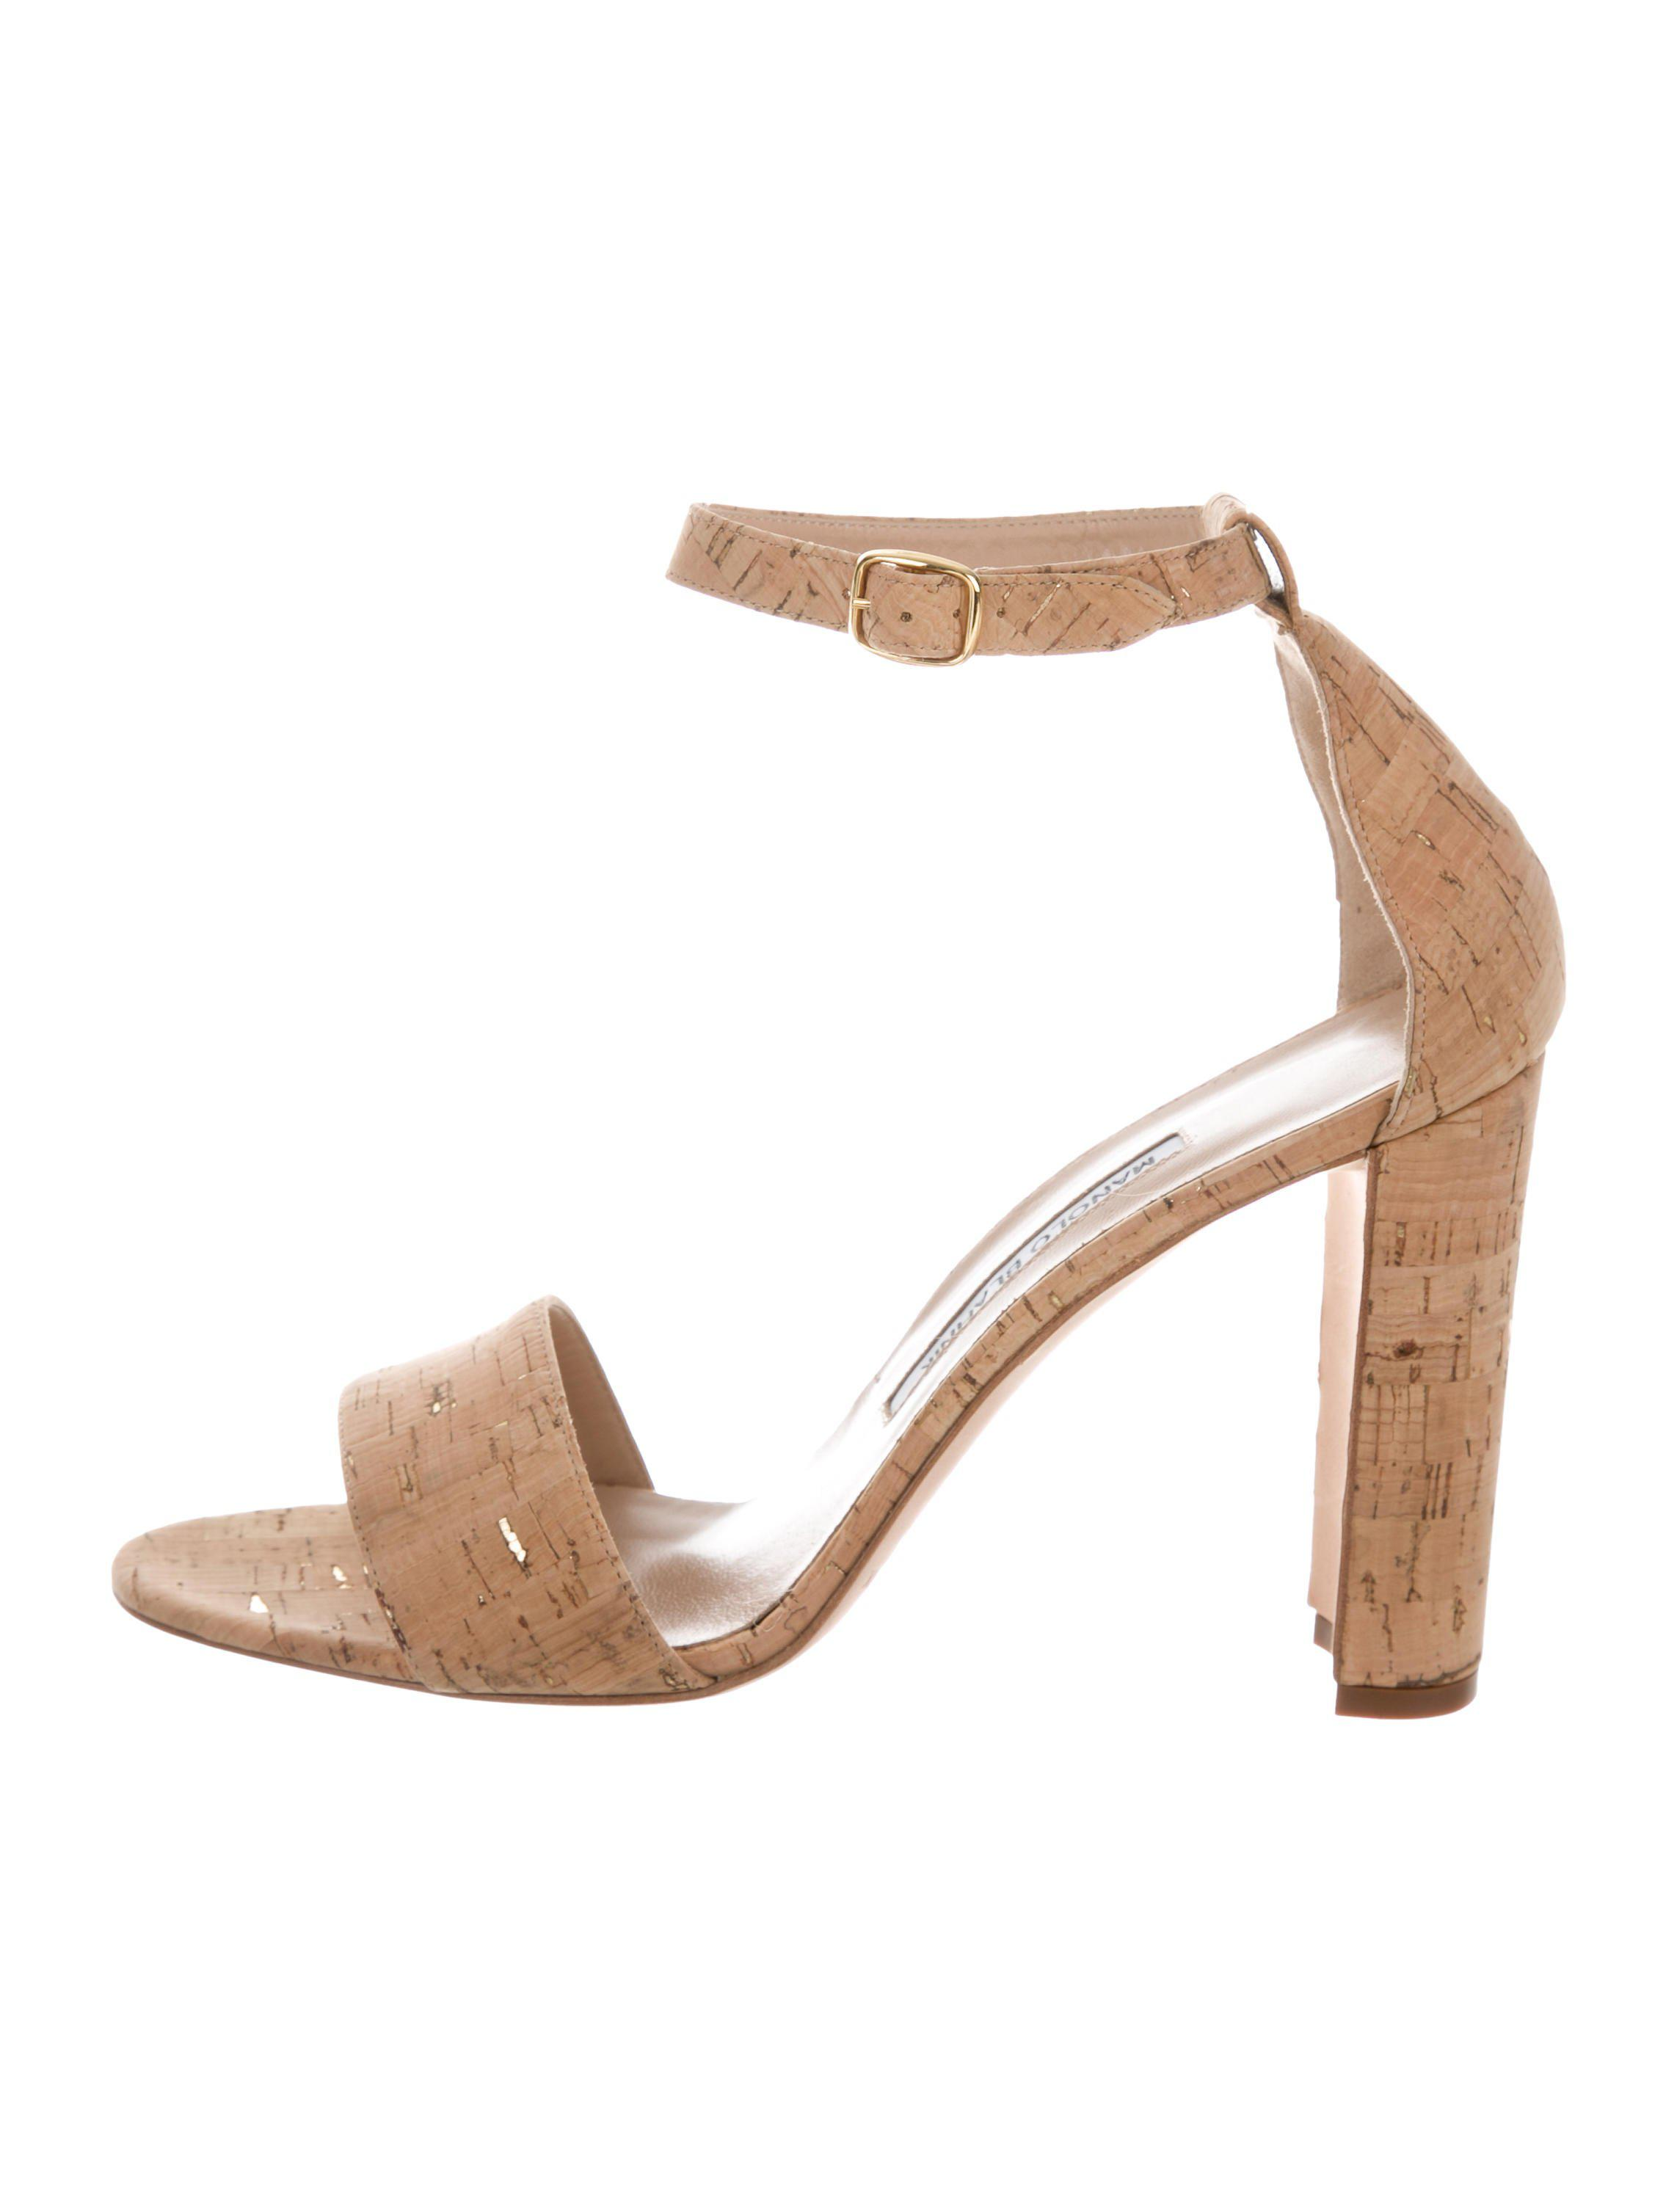 d6143818c43e Lyst - Manolo Blahnik Cork Ankle Strap Sandals Tan in Natural